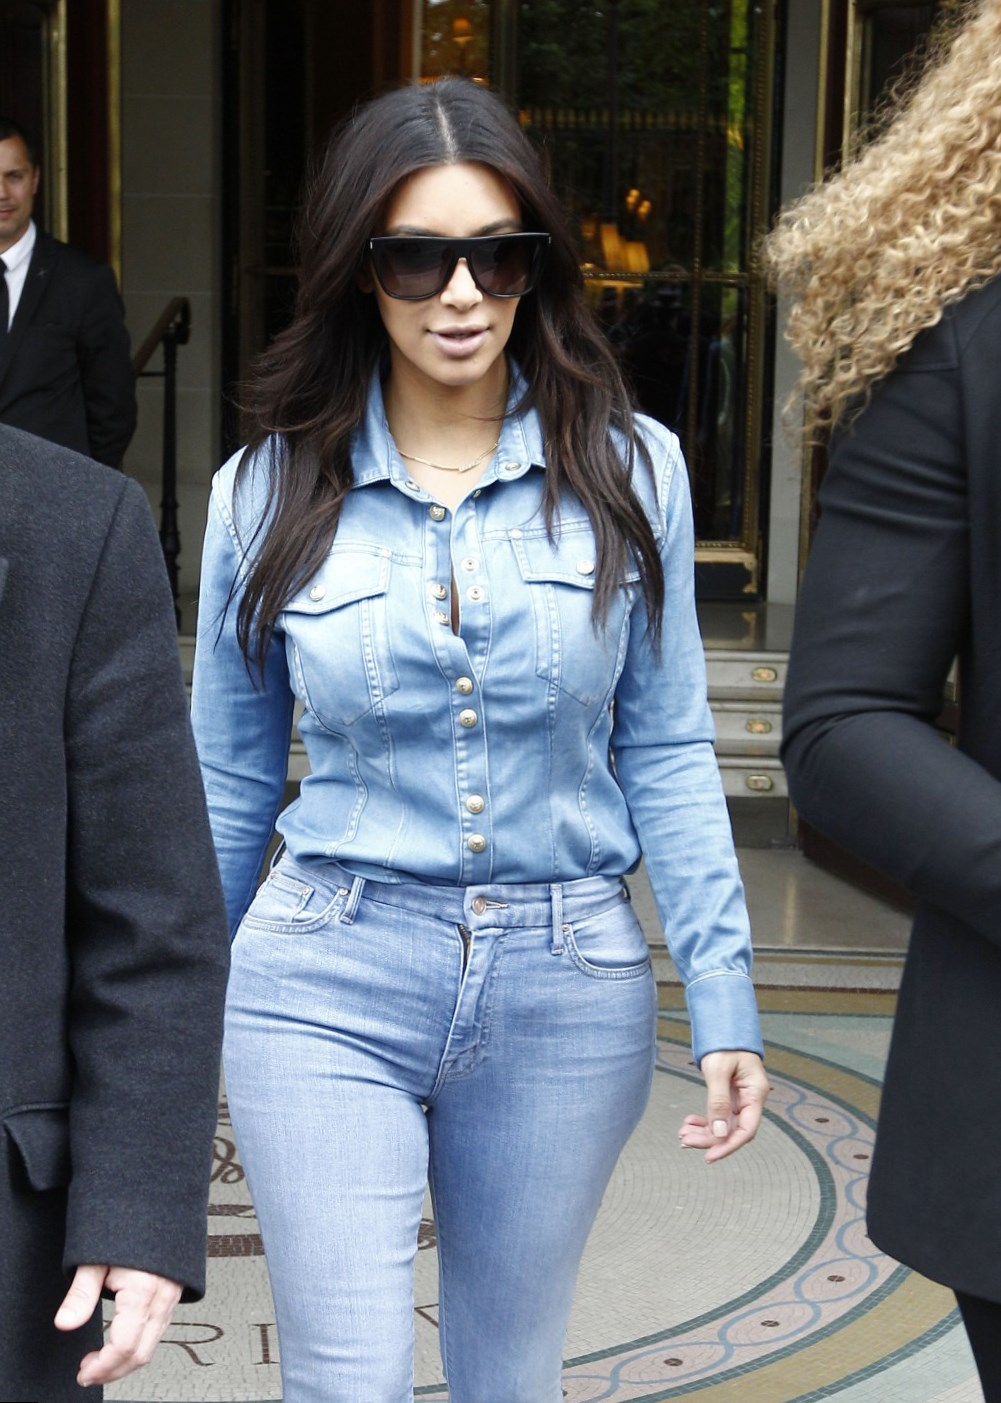 Top 10 Kardashian S Looks Photos